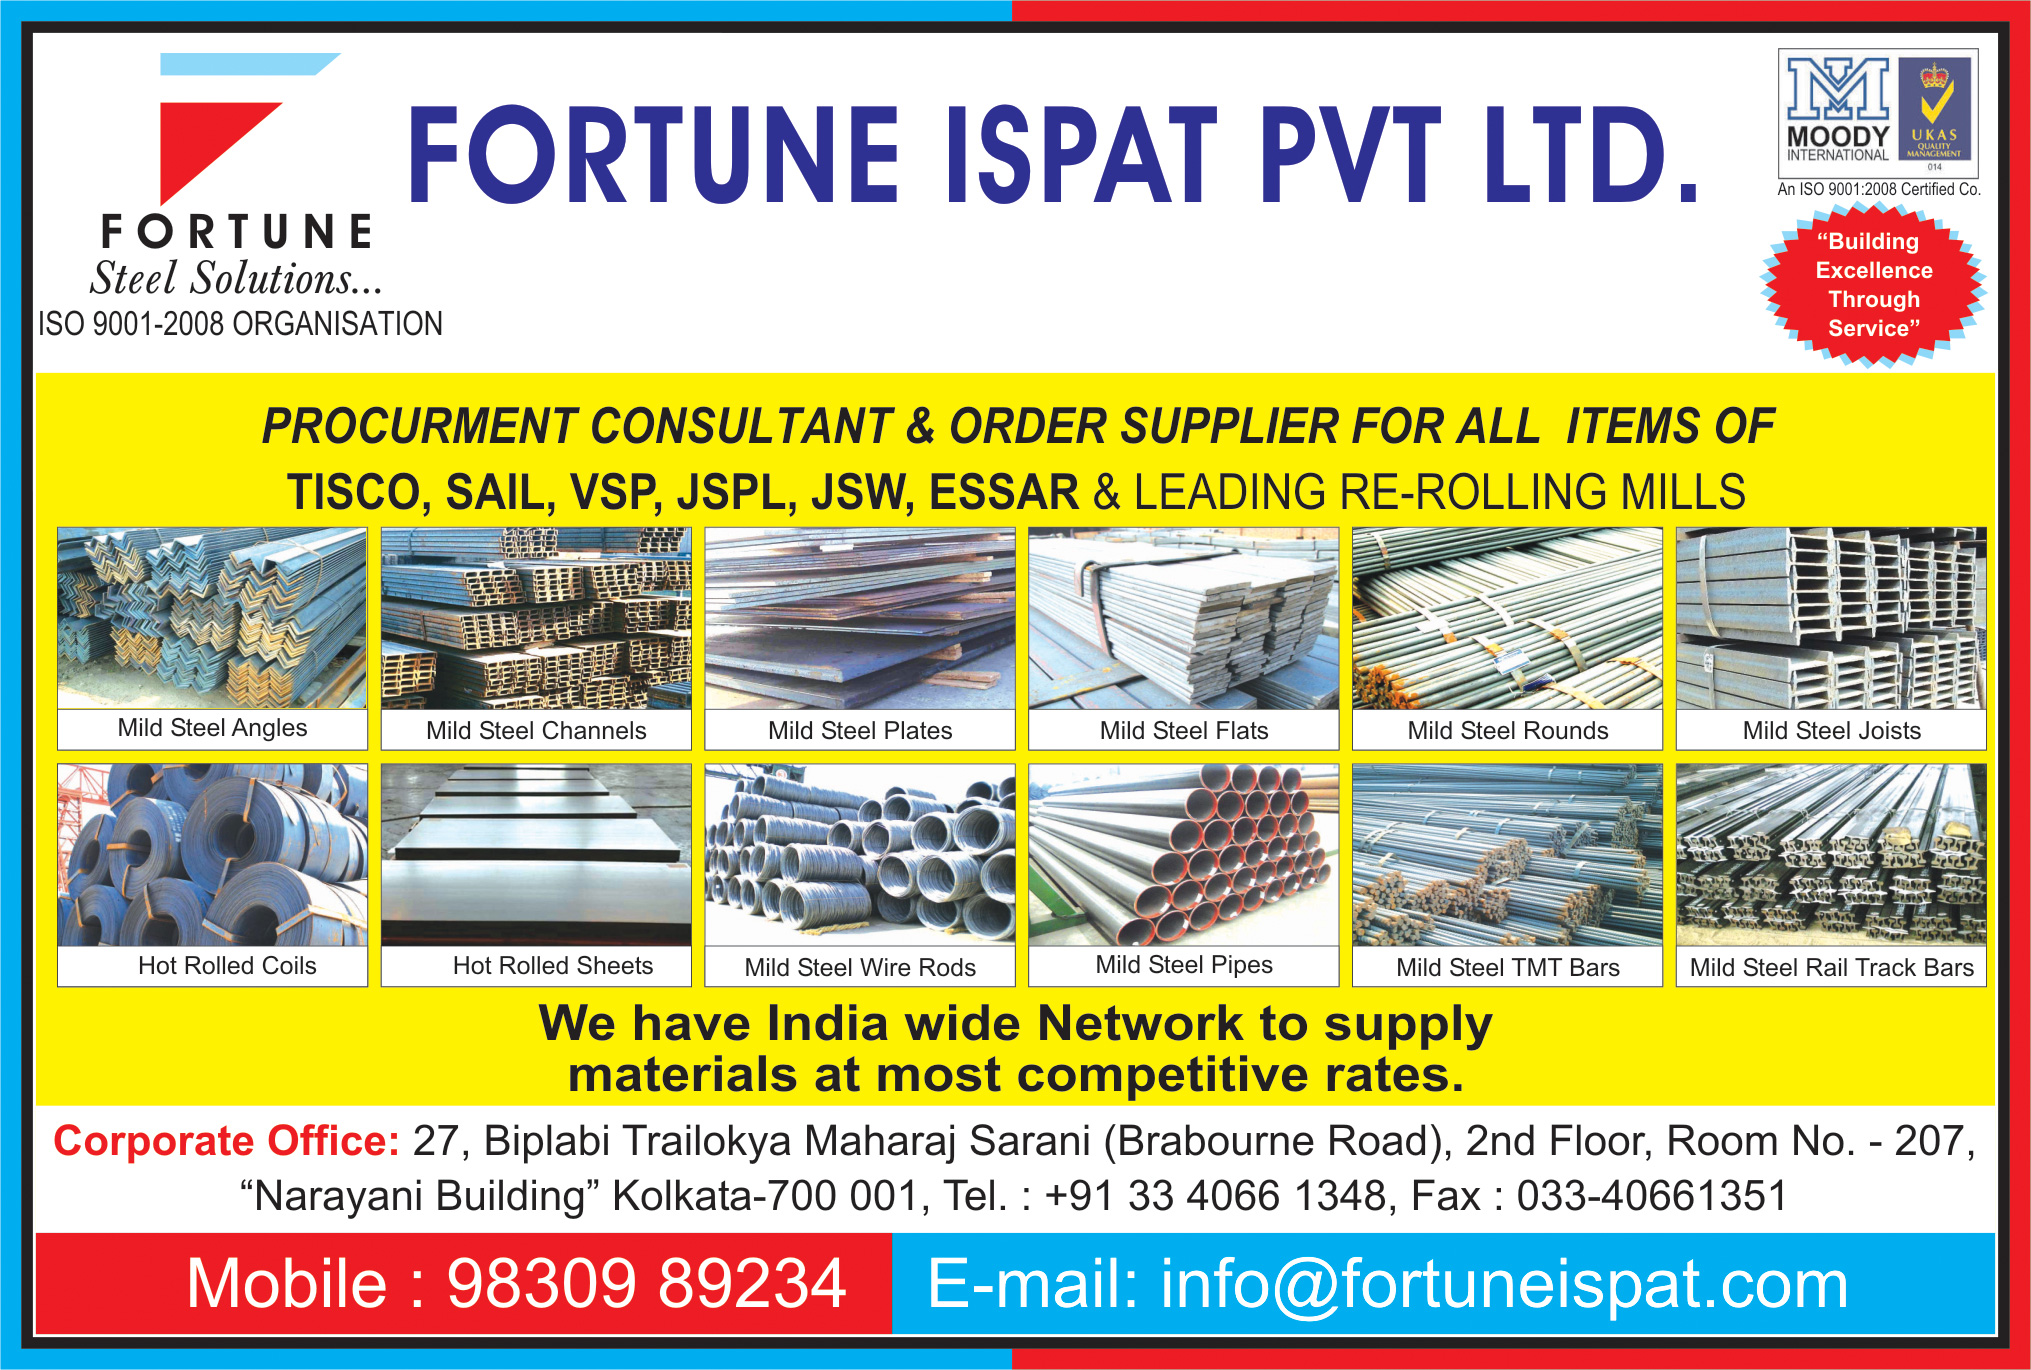 Iron and Steel, FORTUNE ISPAT PVT LTD, Kolkata,  Yellow Pages, Kolkata, West Bengal